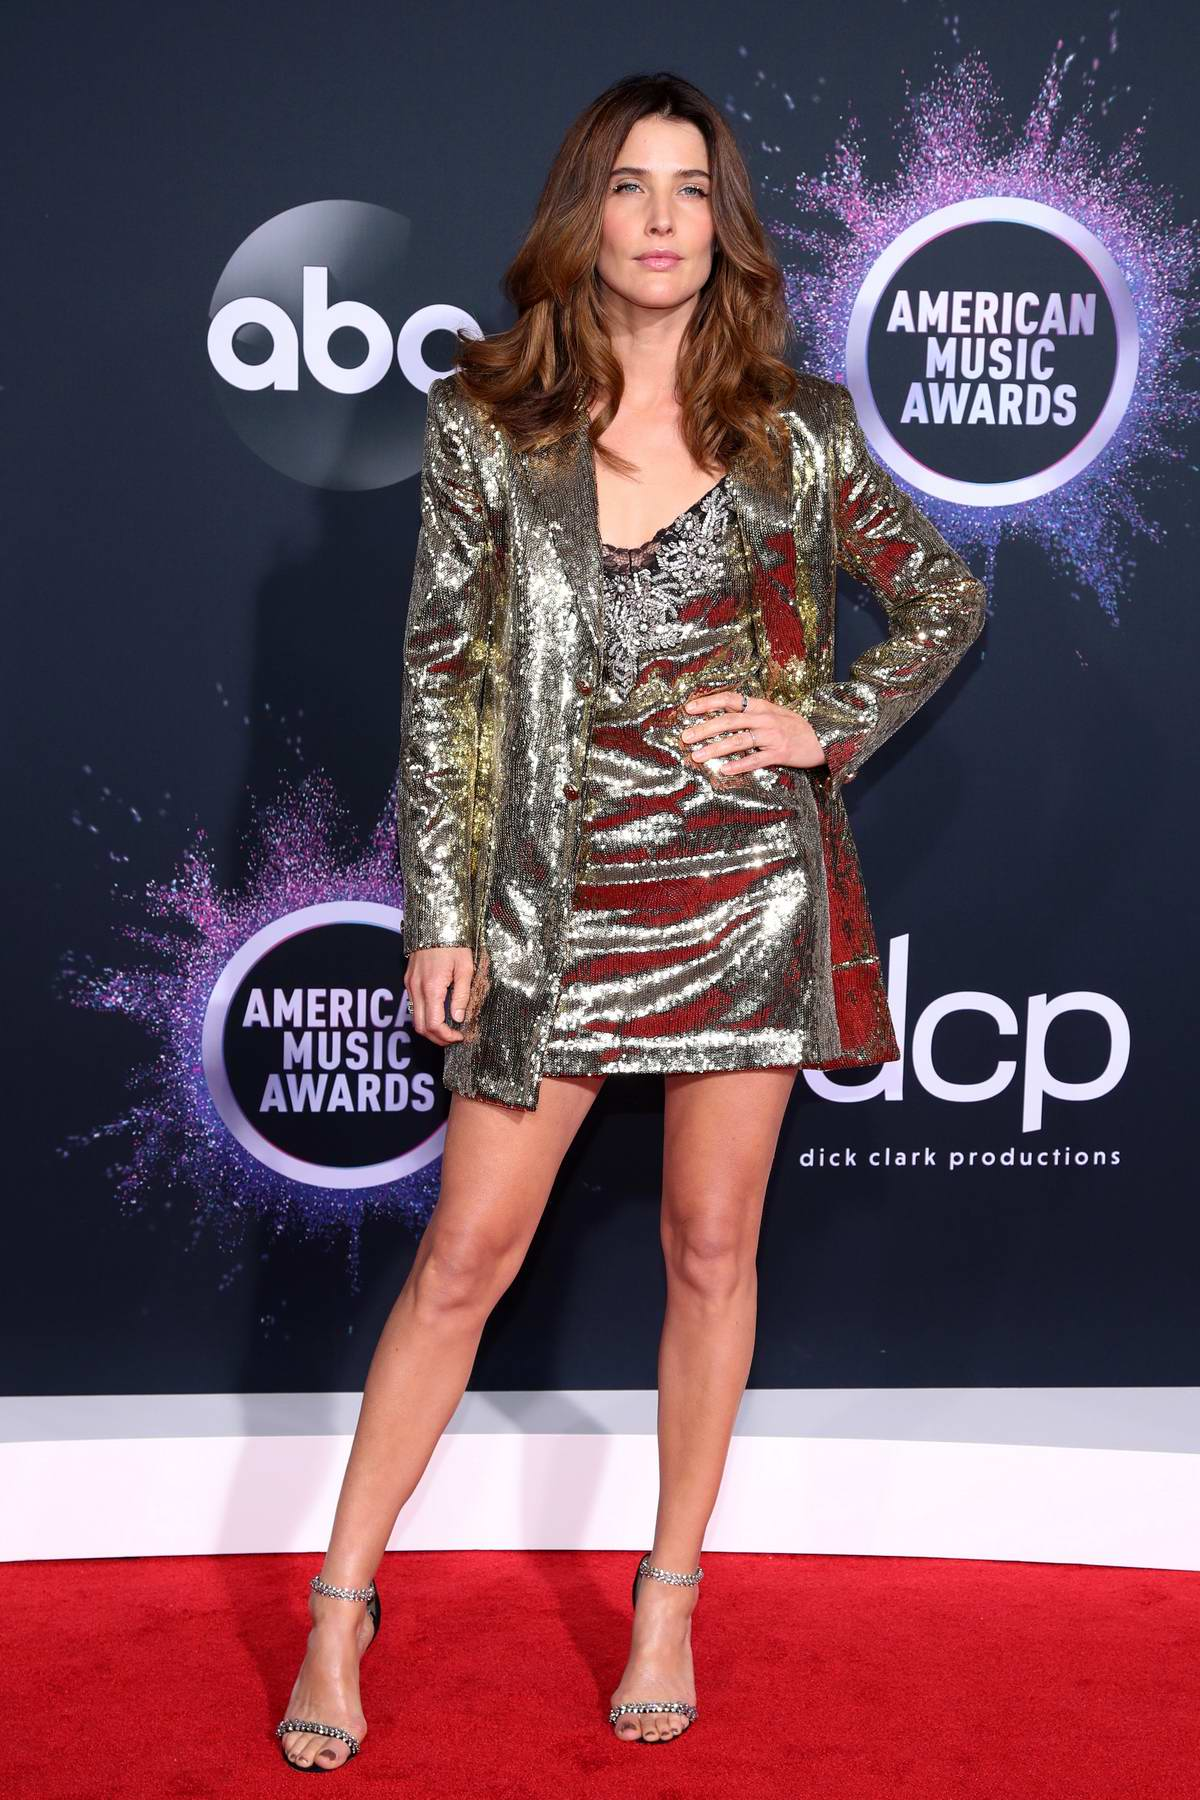 Cobie Smulders attends the 2019 American Music Awards at Microsoft Theater in Los Angeles